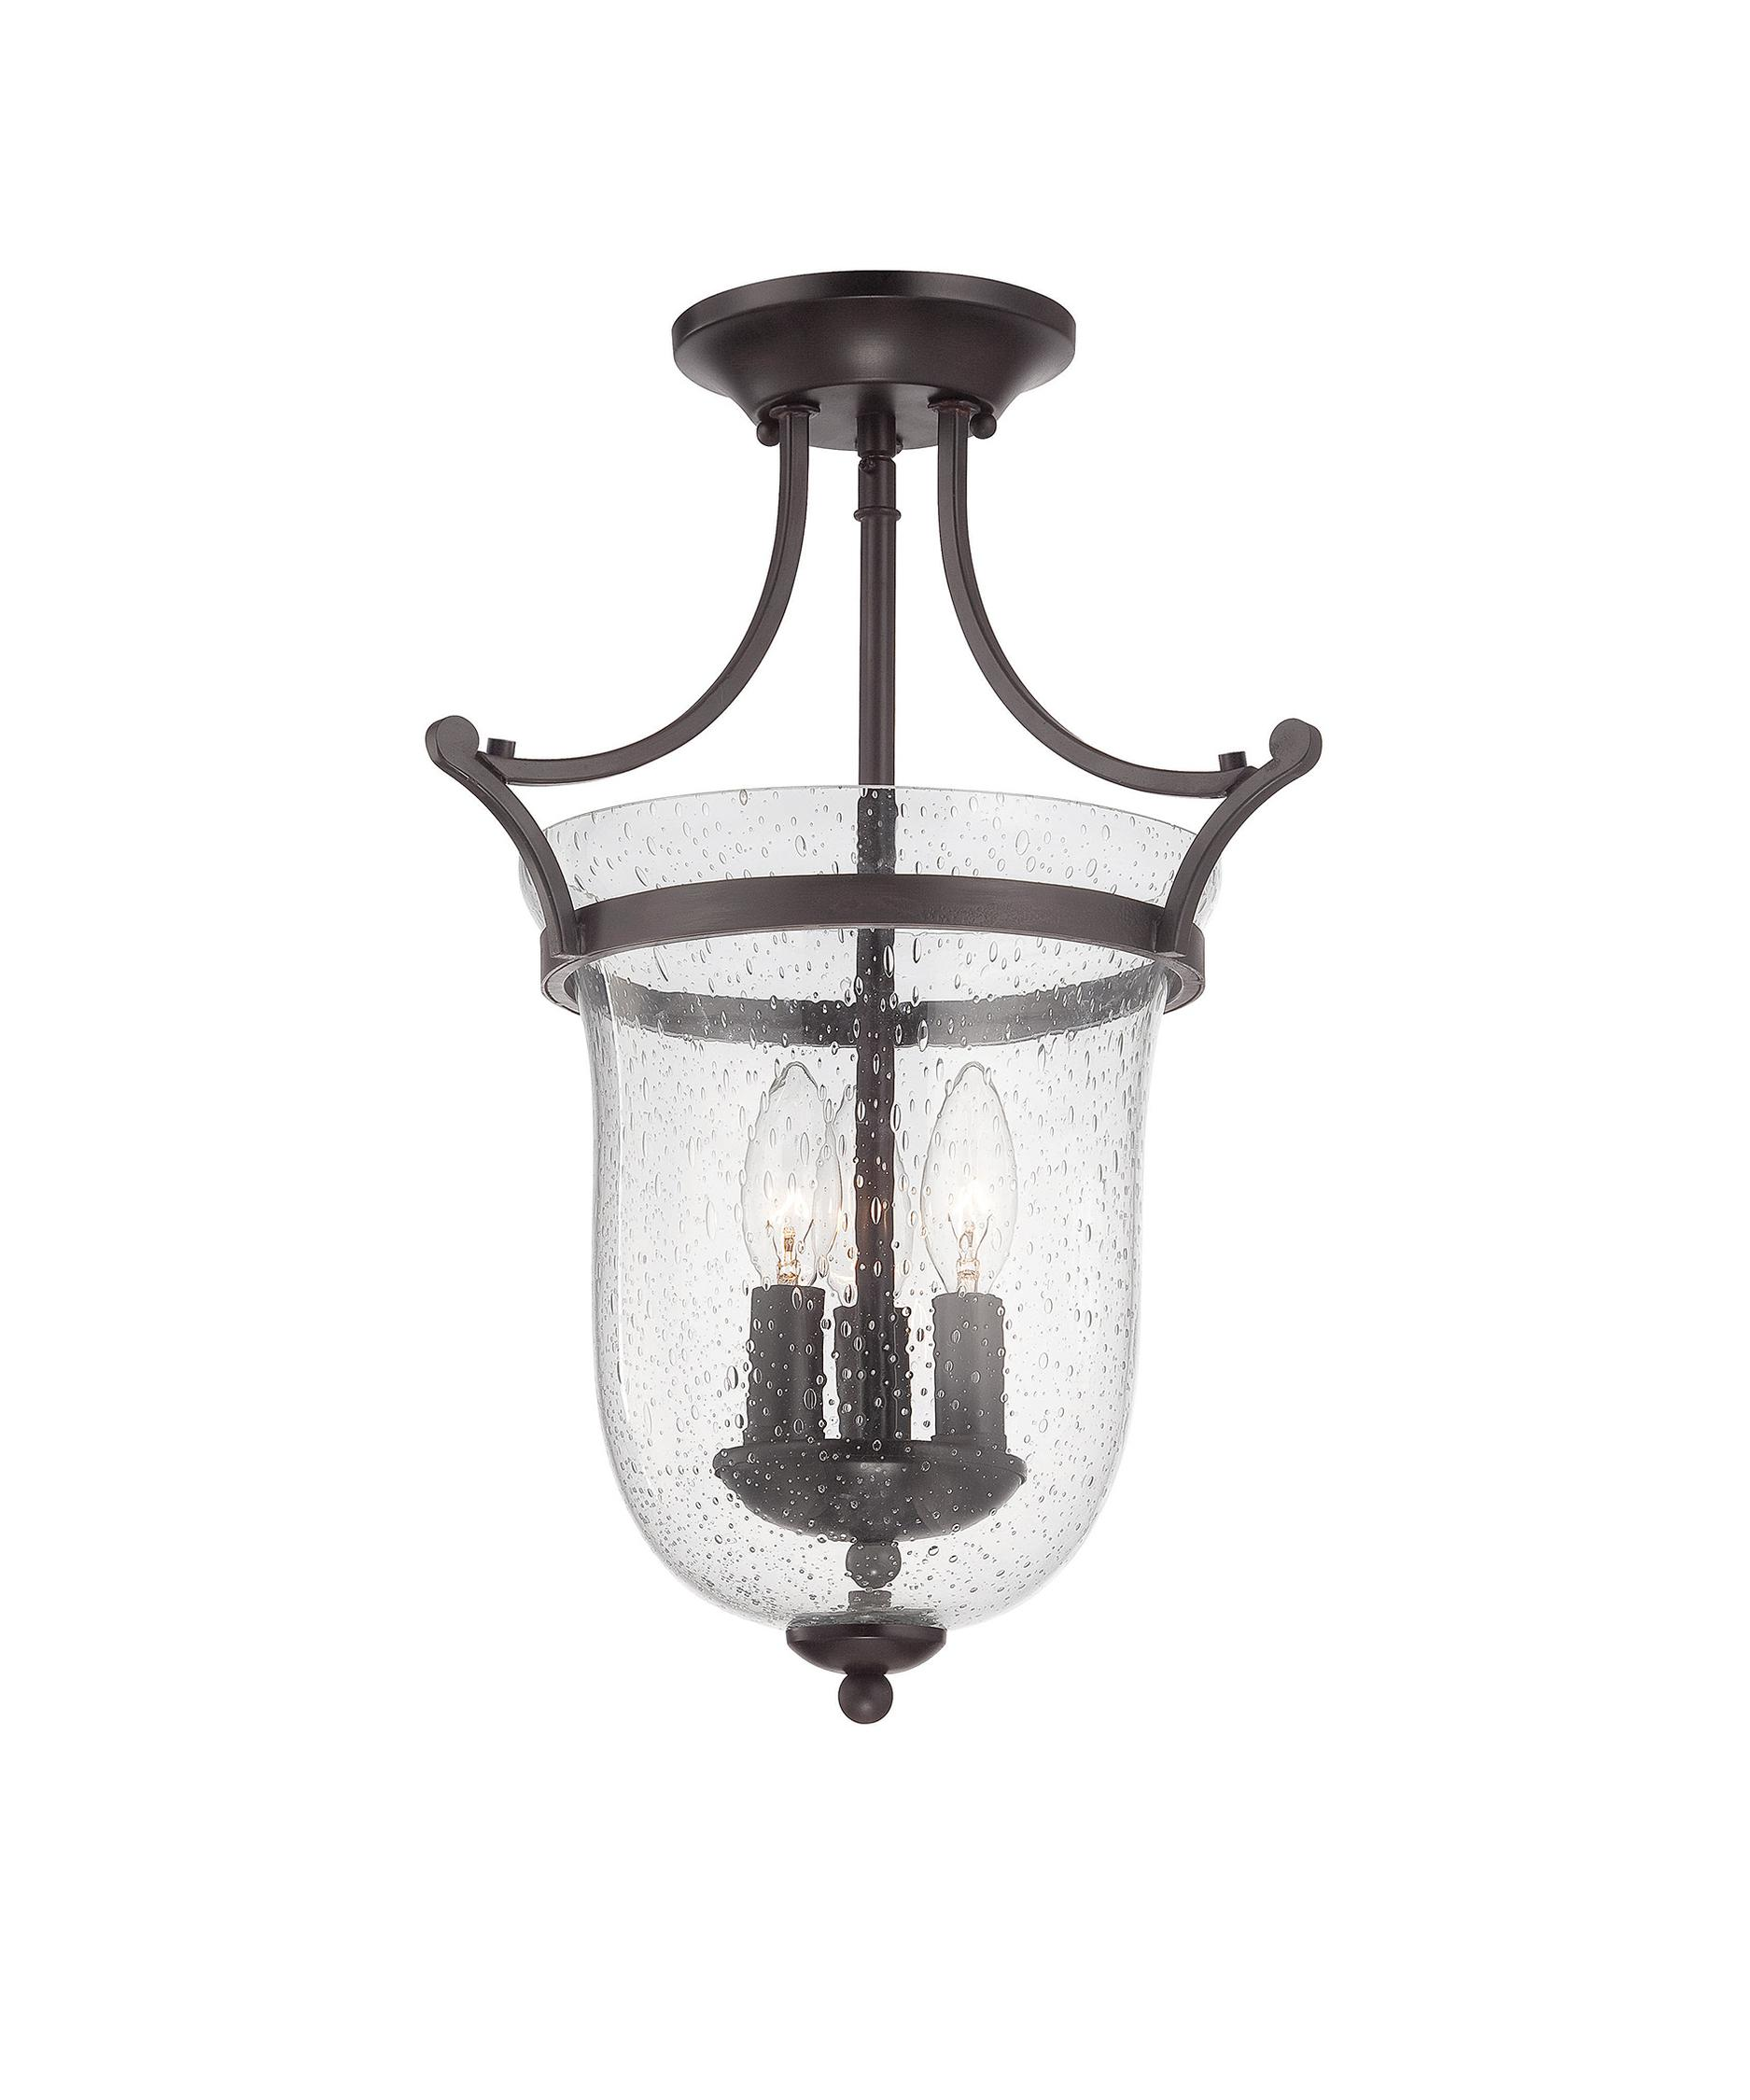 savoy house trudy 12 inch wide semi flush mount capitol lighting - Savoy Lighting